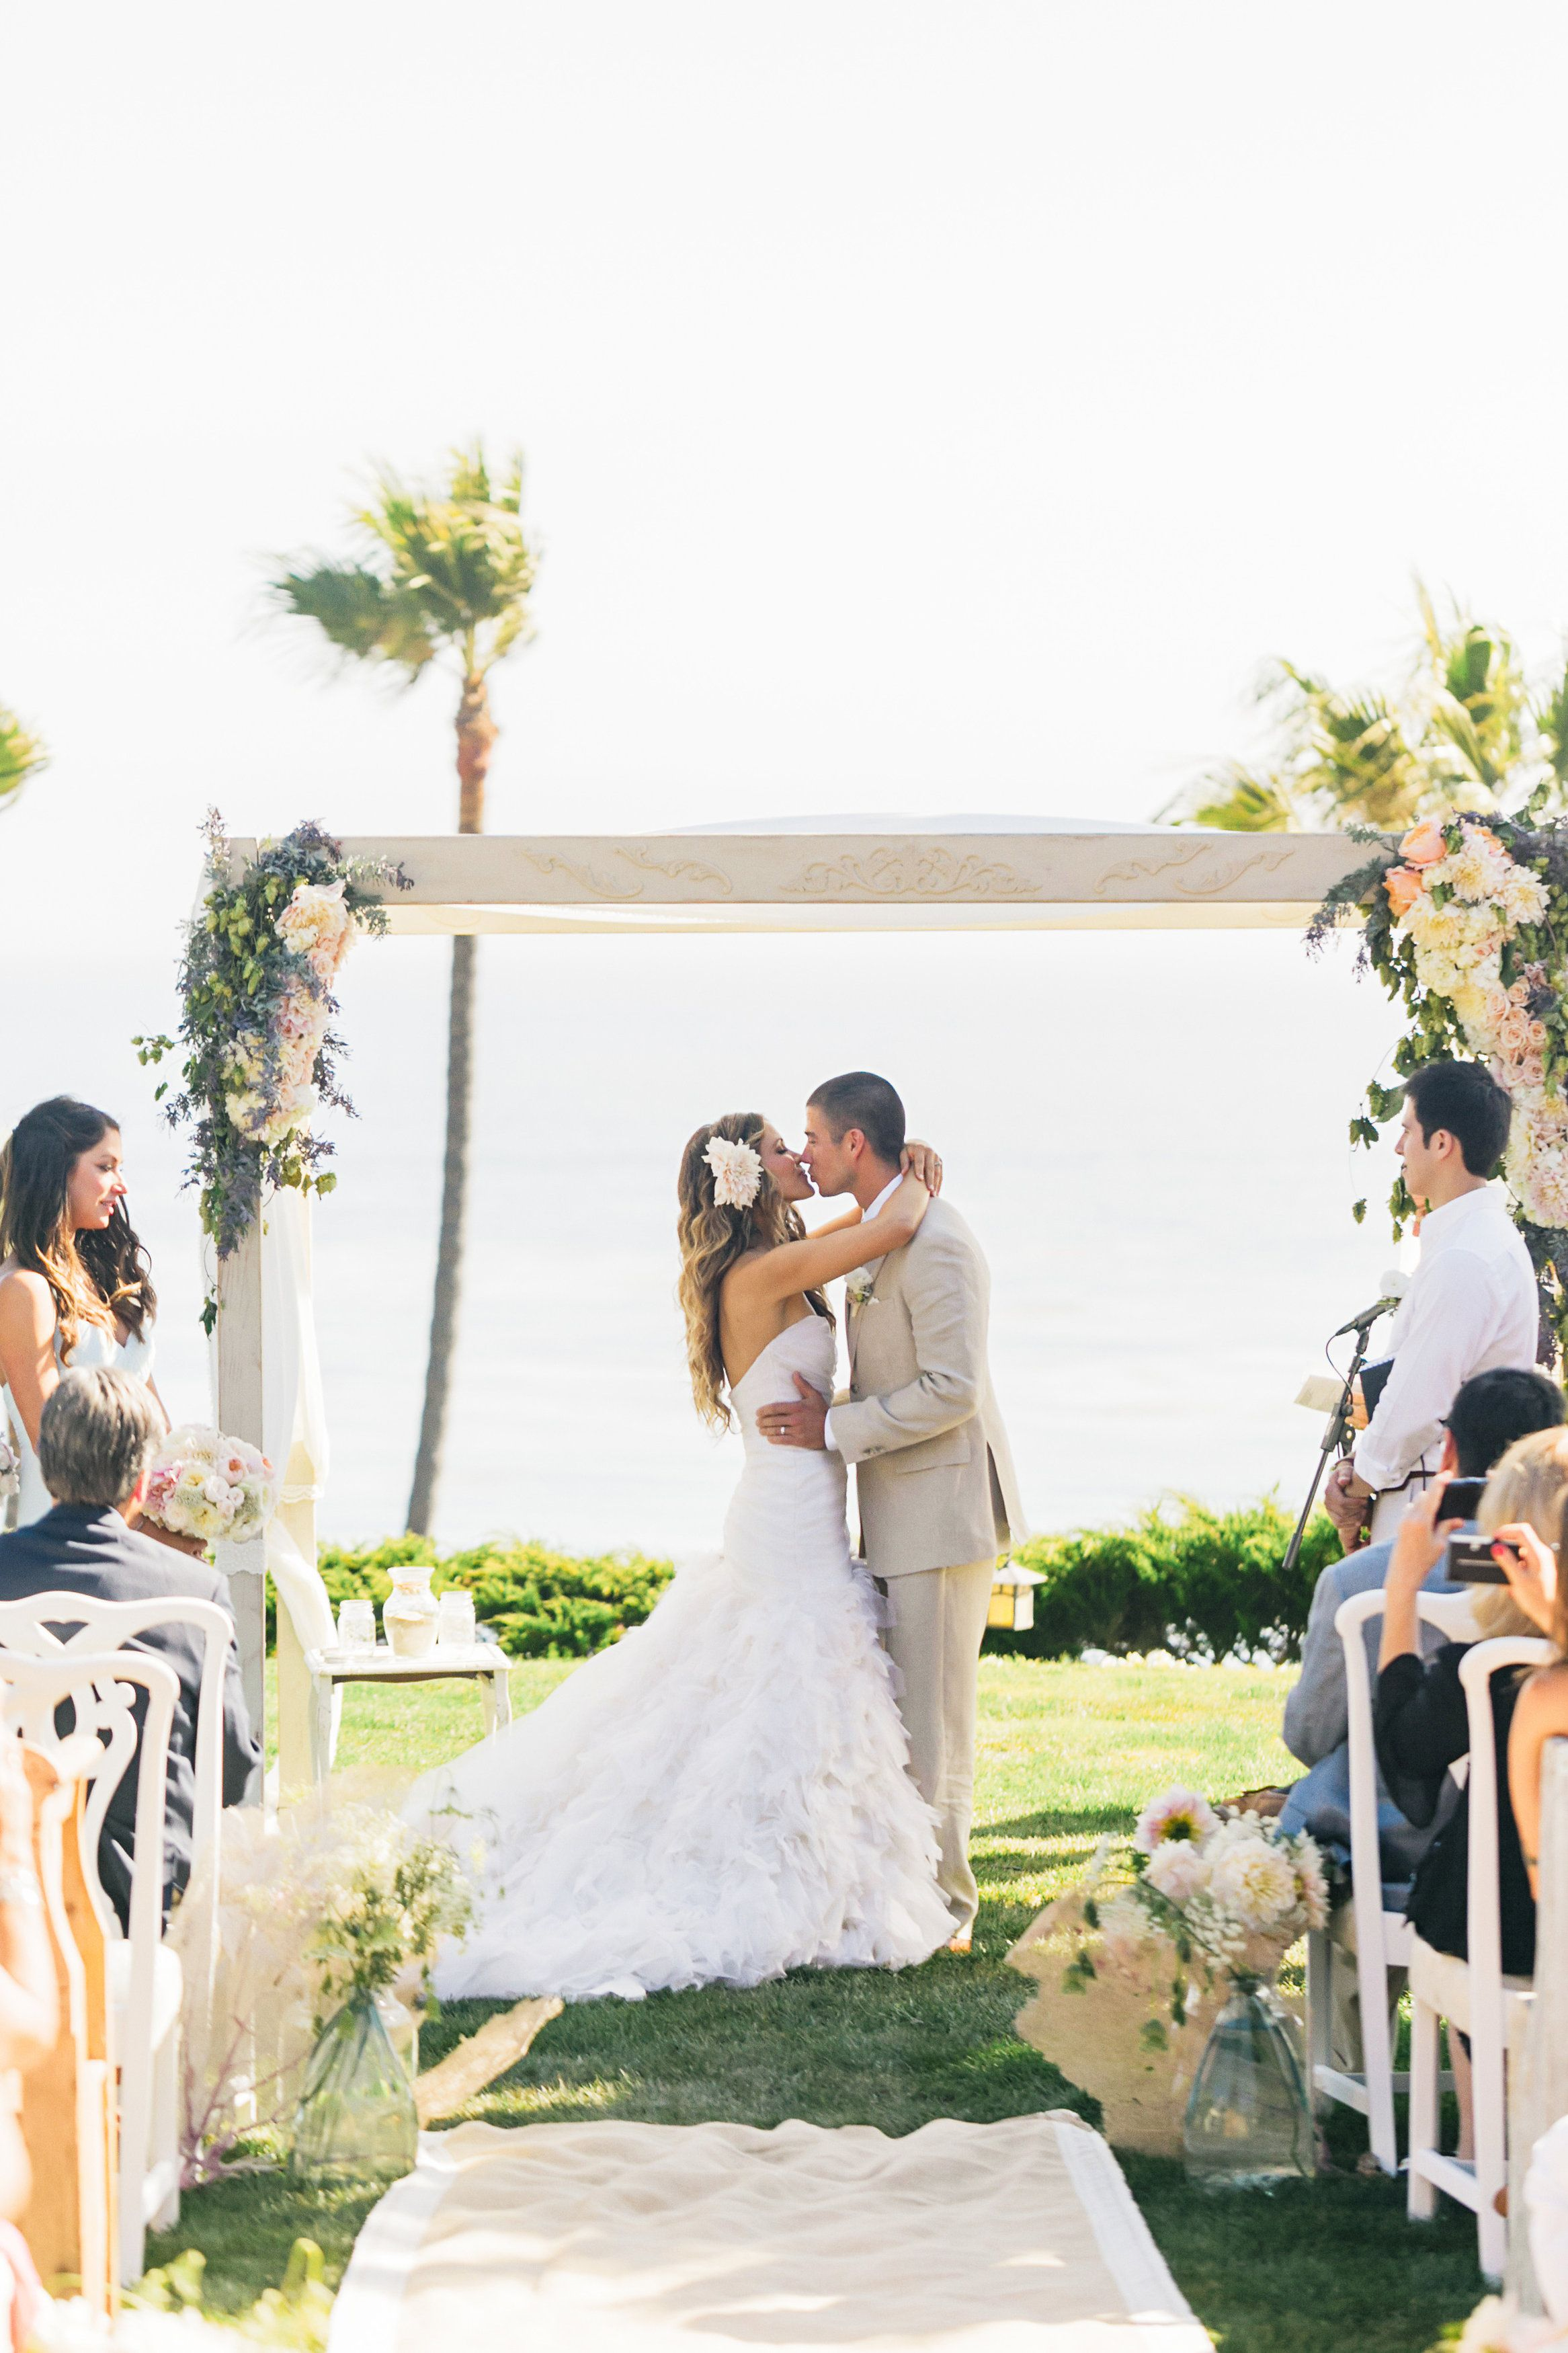 Beach Wedding Inspo! Tone It Up for your big day ♥